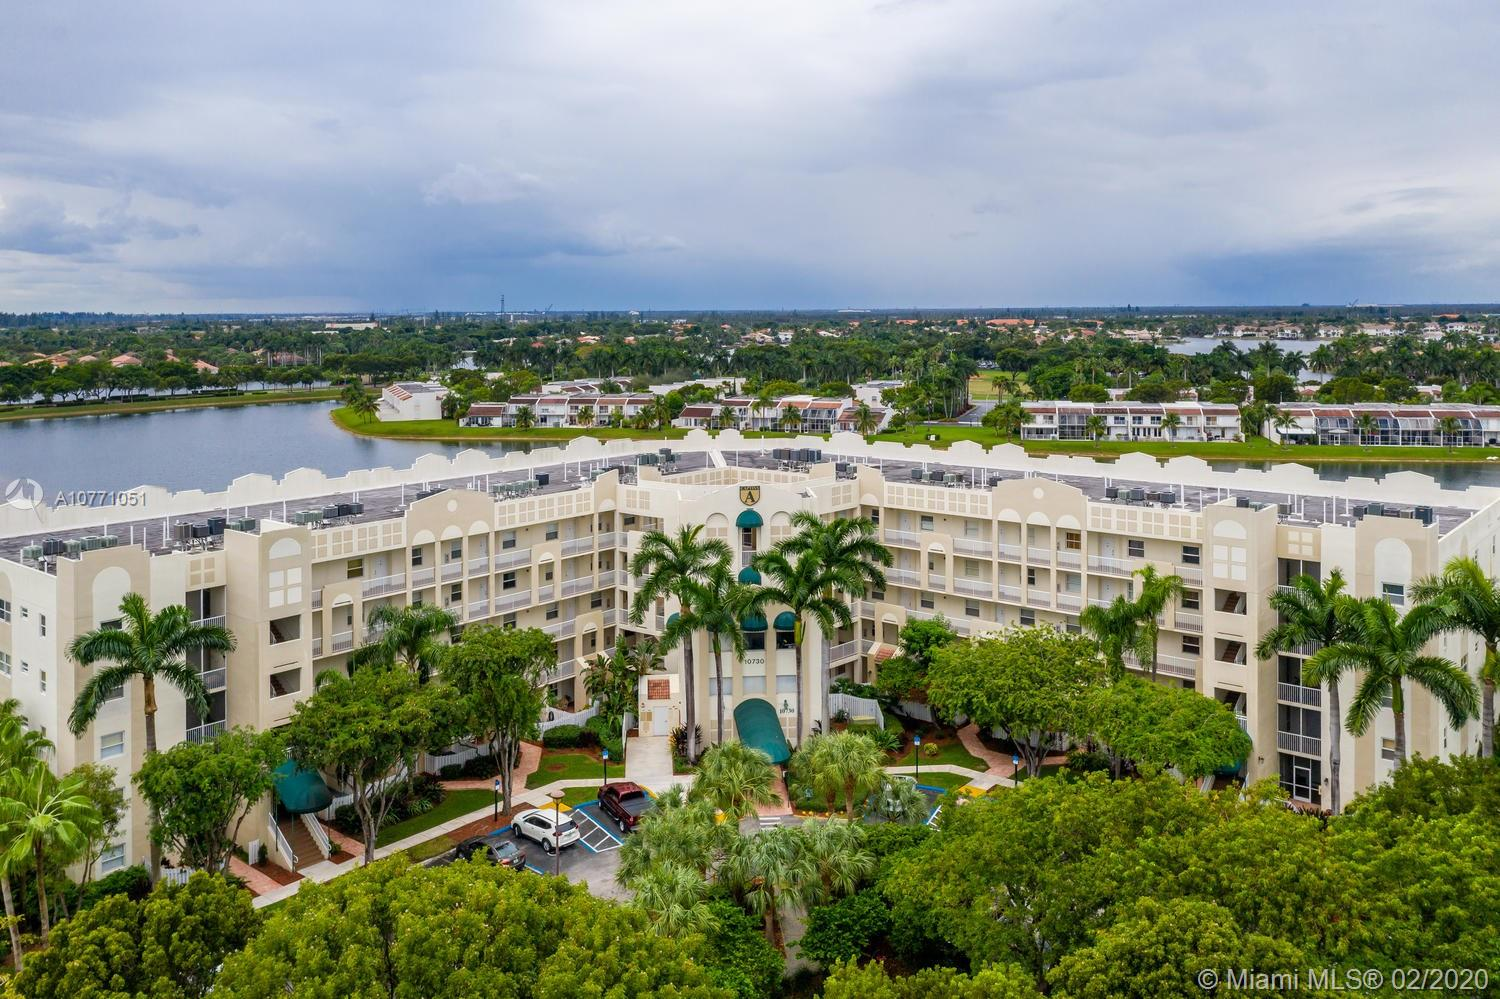 10730 NW 66th St #211 For Sale A10771051, FL